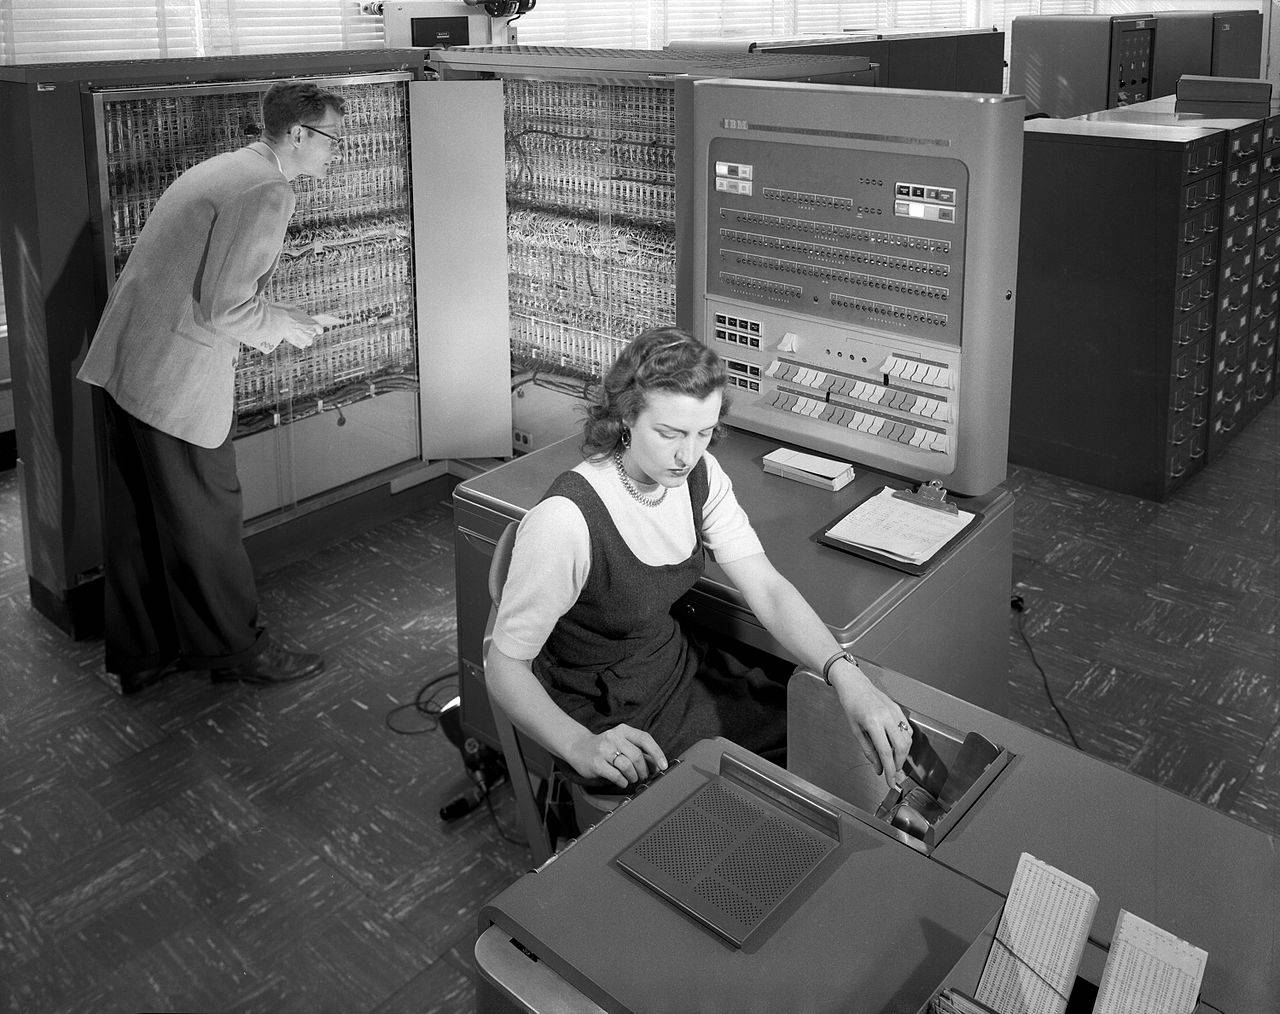 NACA researchers using an IBM type 704 electronic data processing machine in 1957